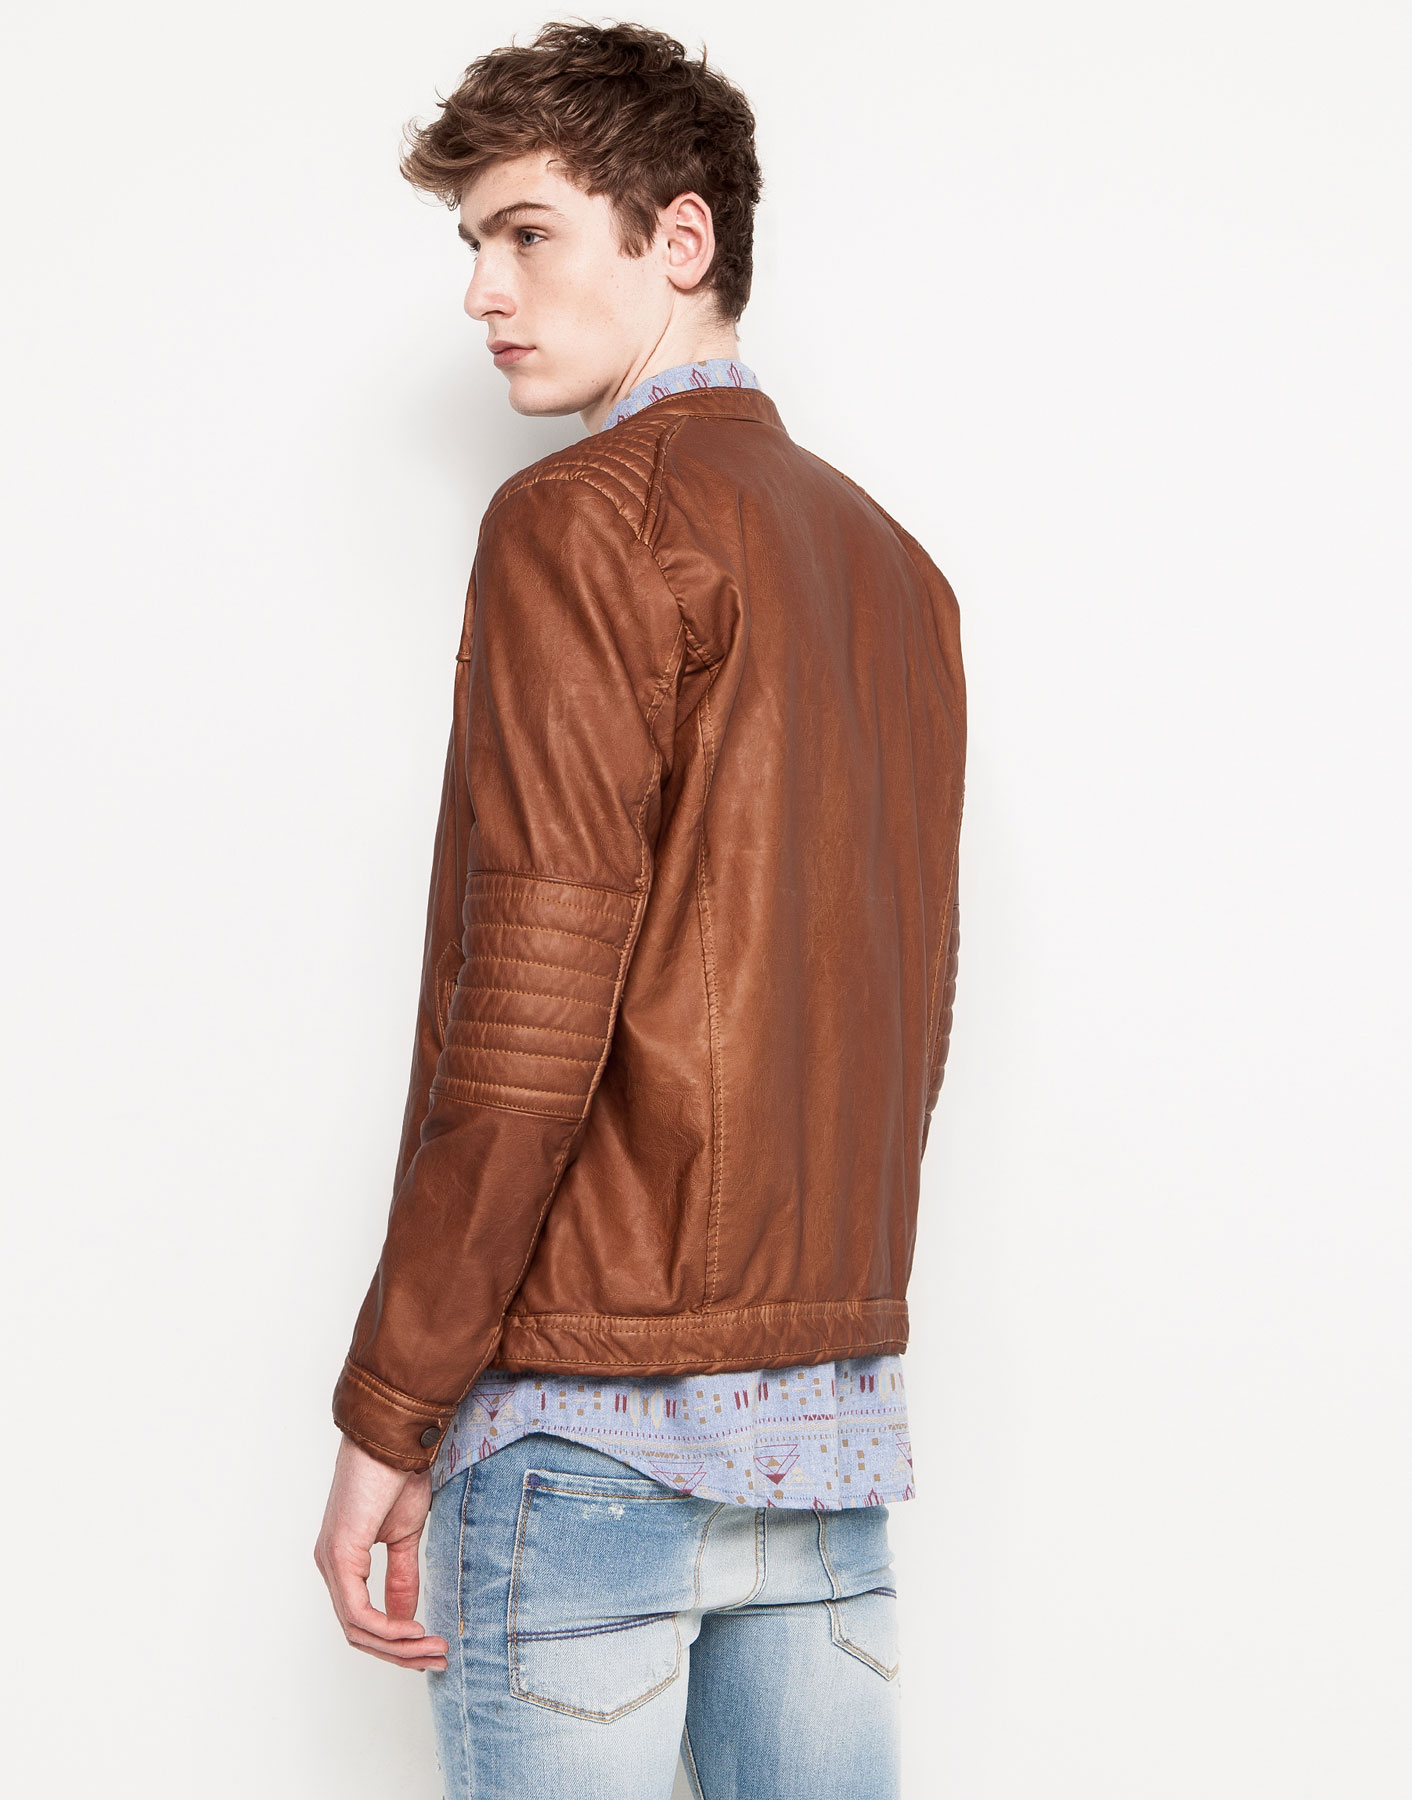 Pull and bear leather jacket